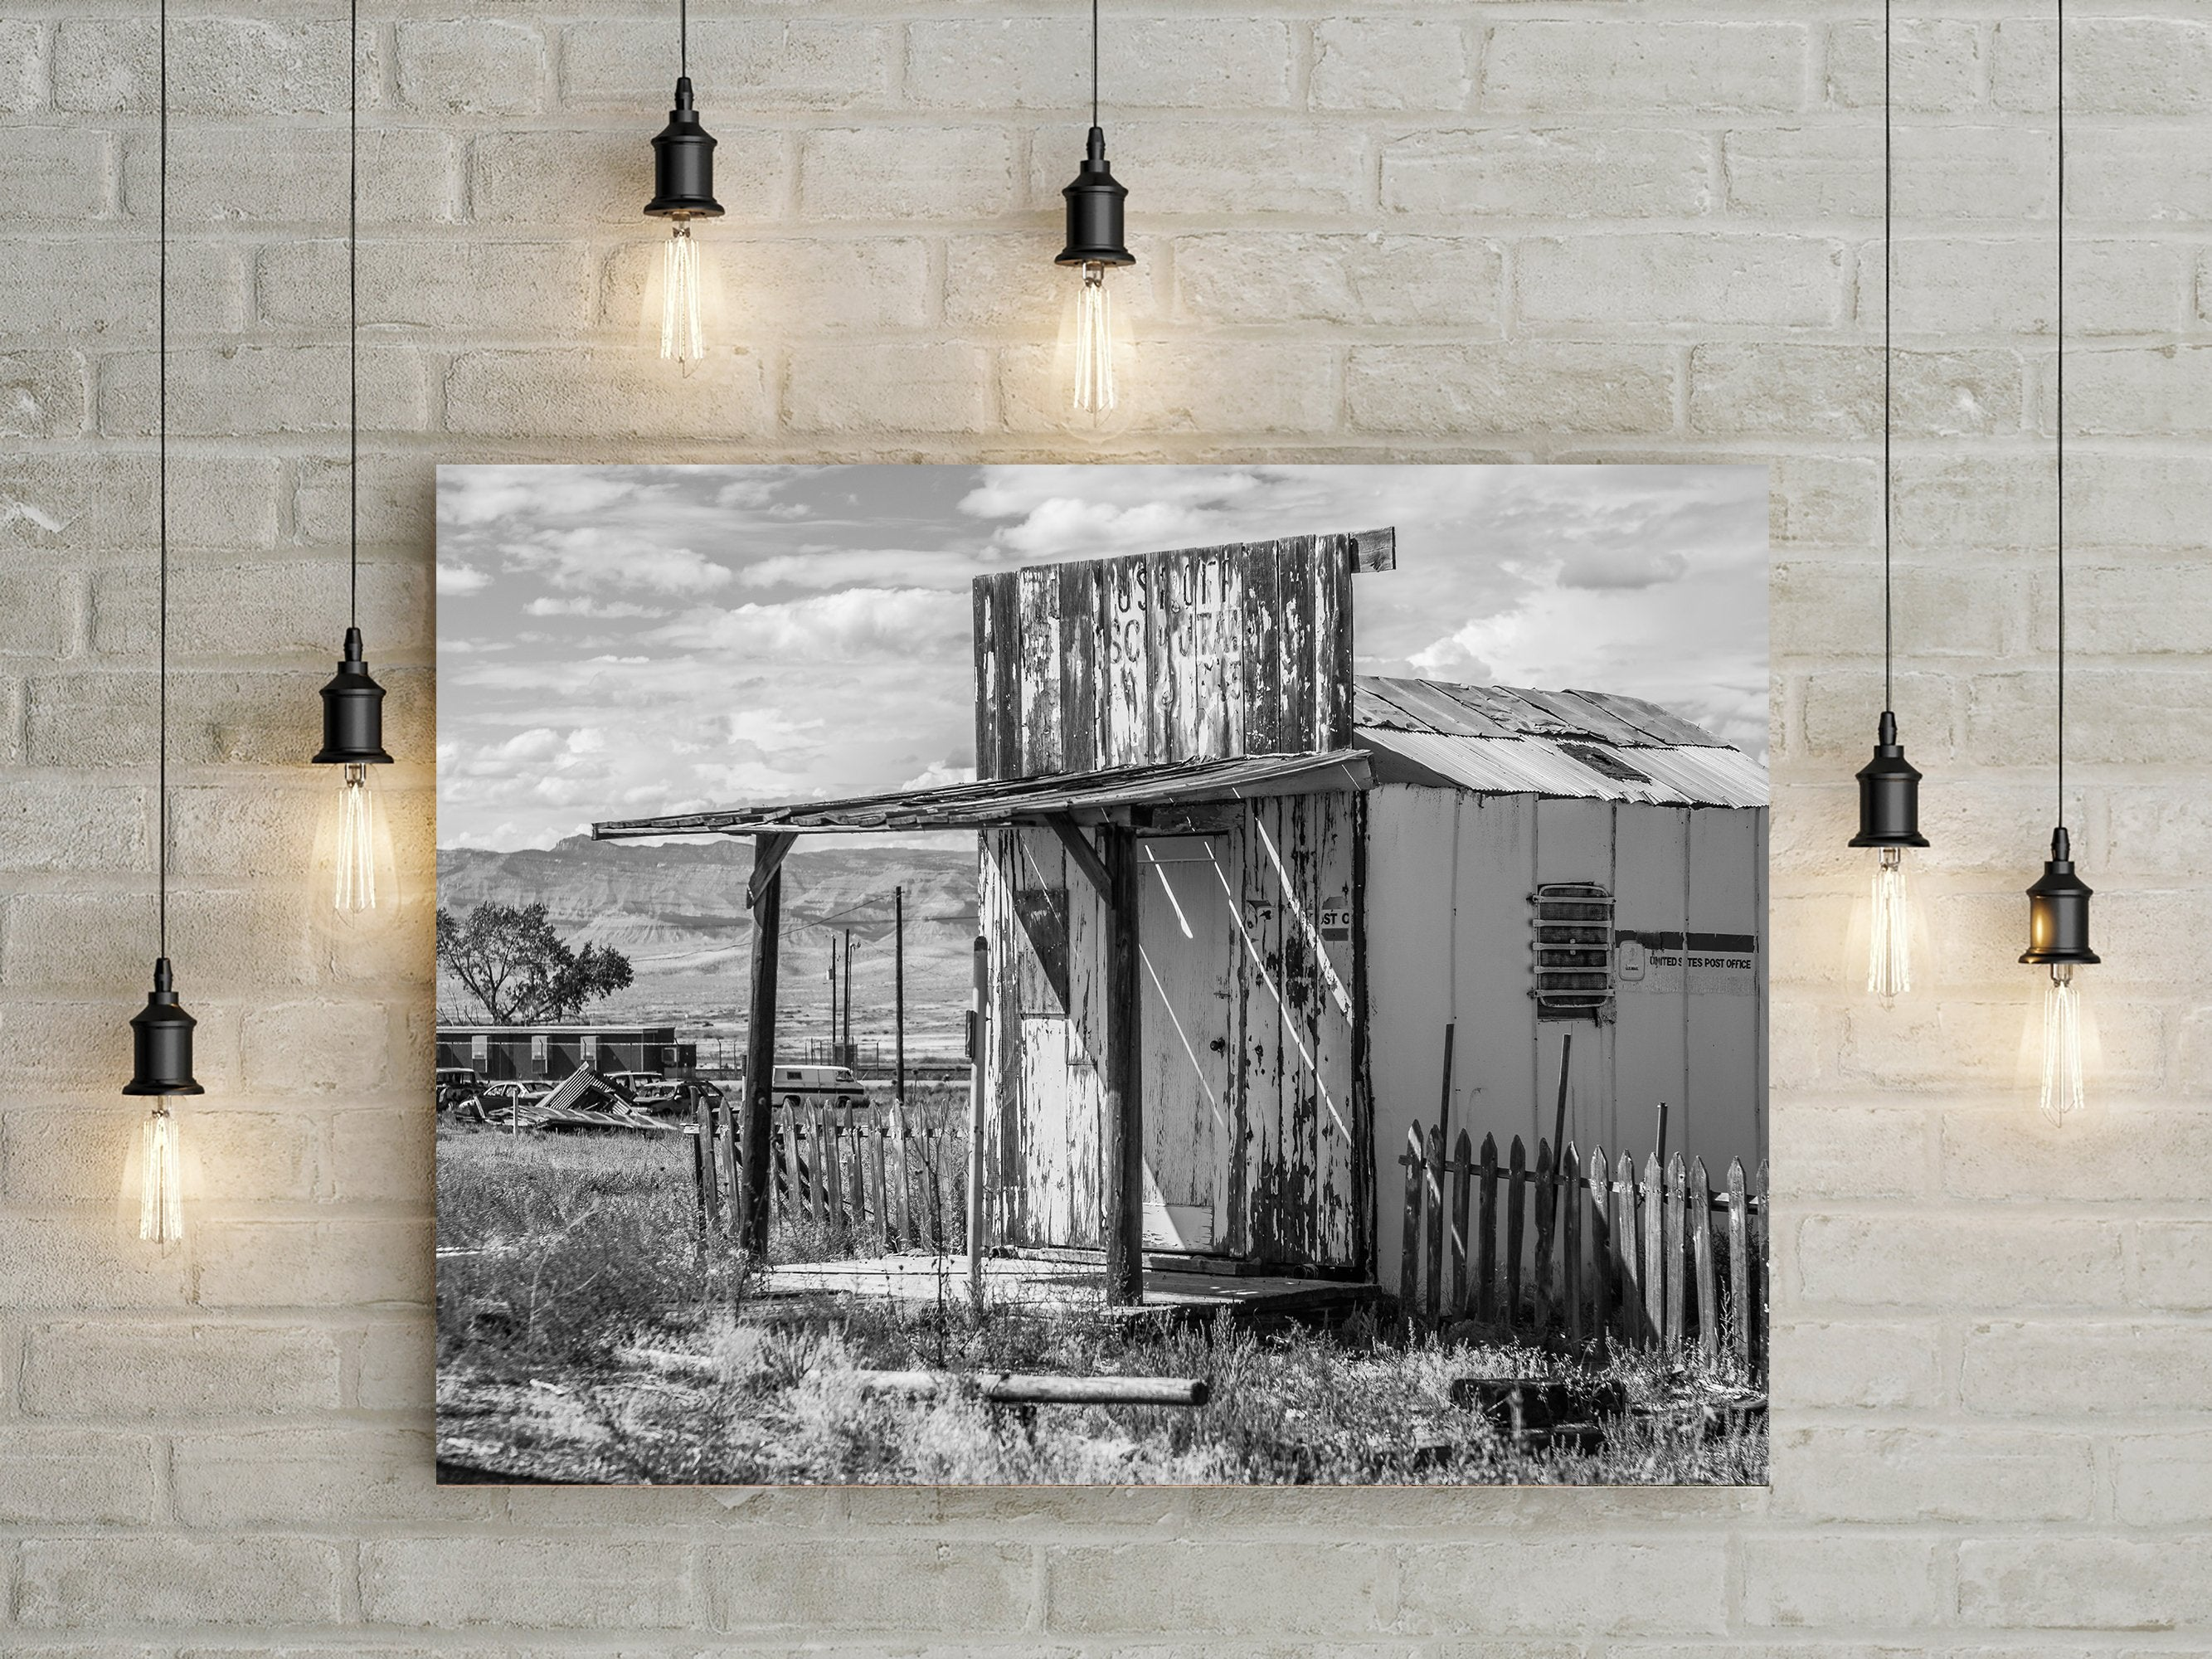 Tiny Post Office, Utah Black and White Photo Print